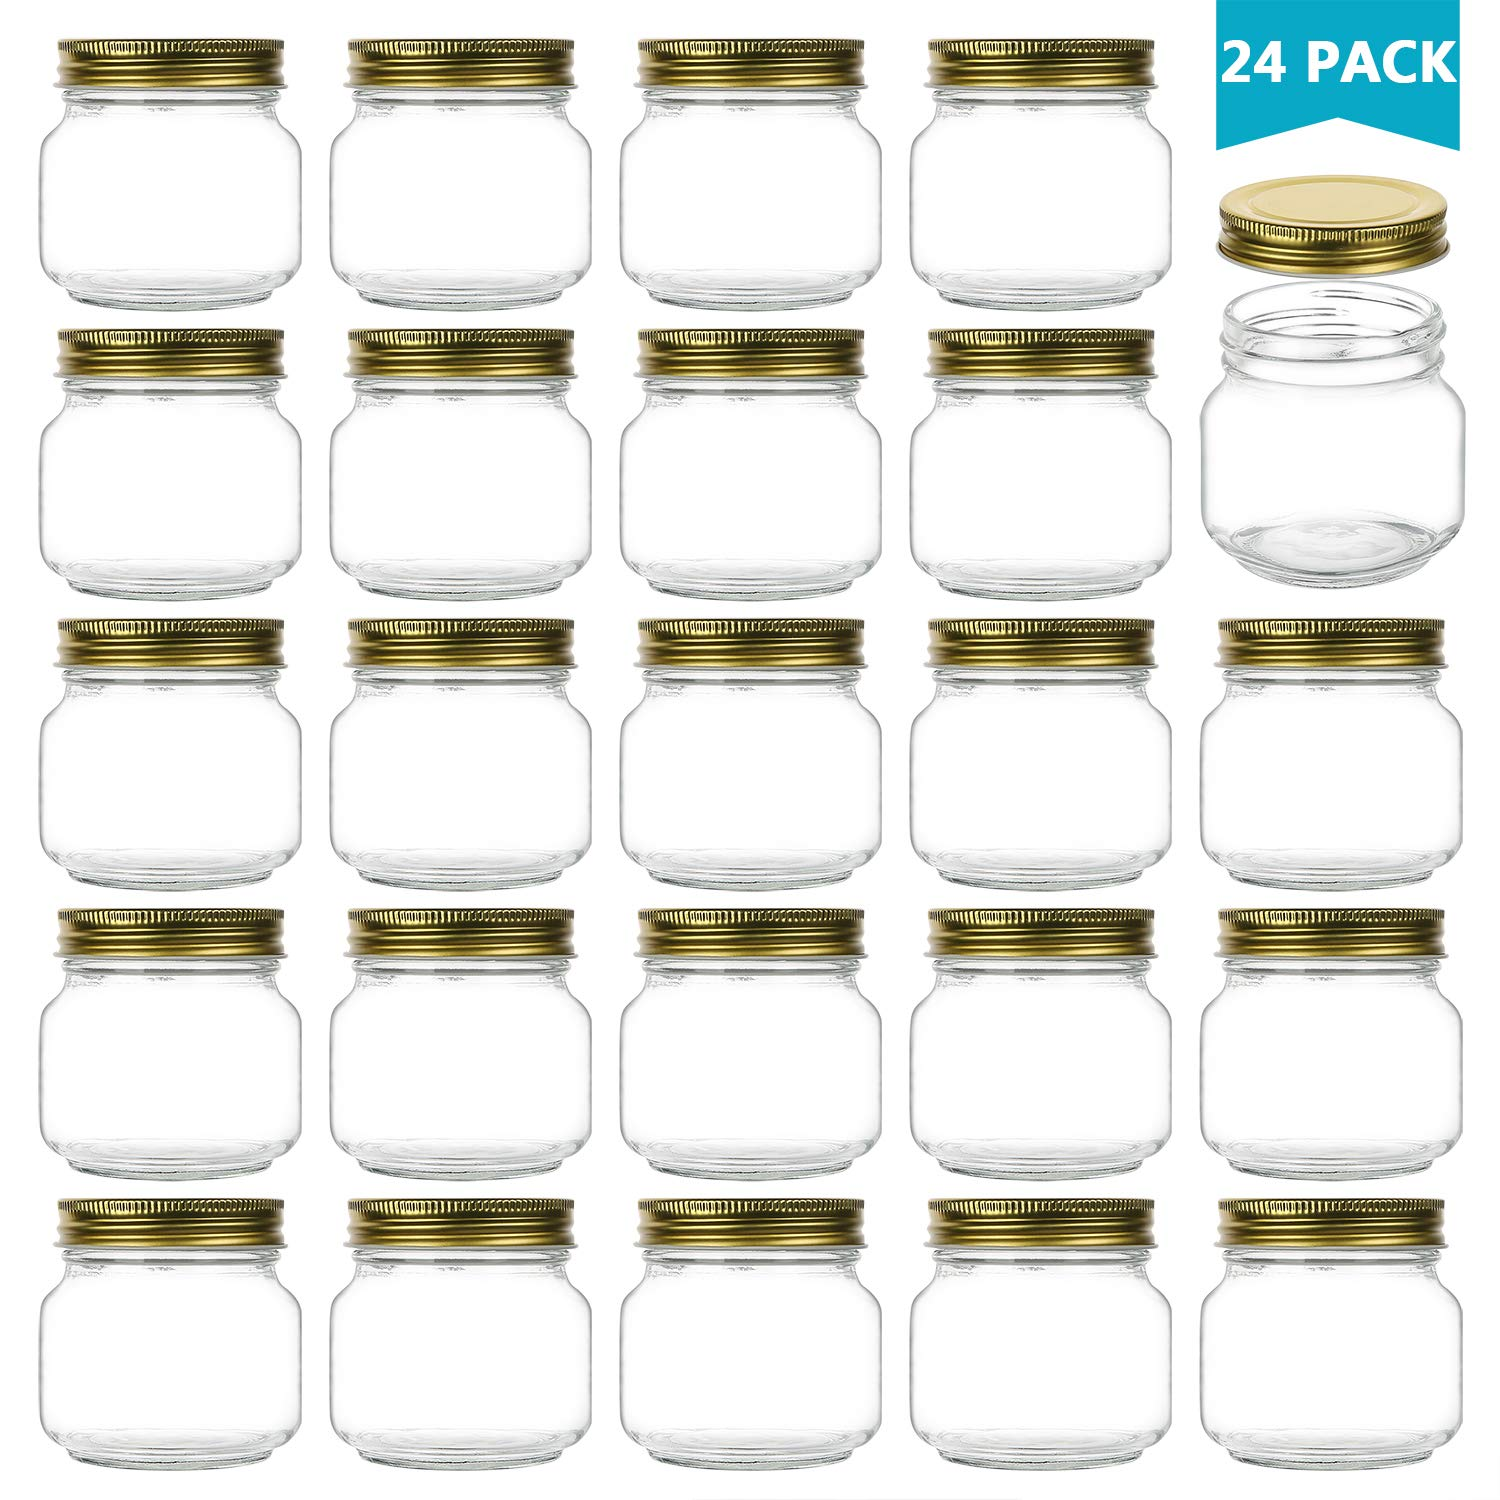 Encheng 8 oz Glass Jars With Lids,Ball Wide Mouth Mason Jars For Storage,Canning Jars For Caviar,Herb,Jelly,Jams,Honey,Dishware Safe,Set Of 24 by Encheng (Image #1)